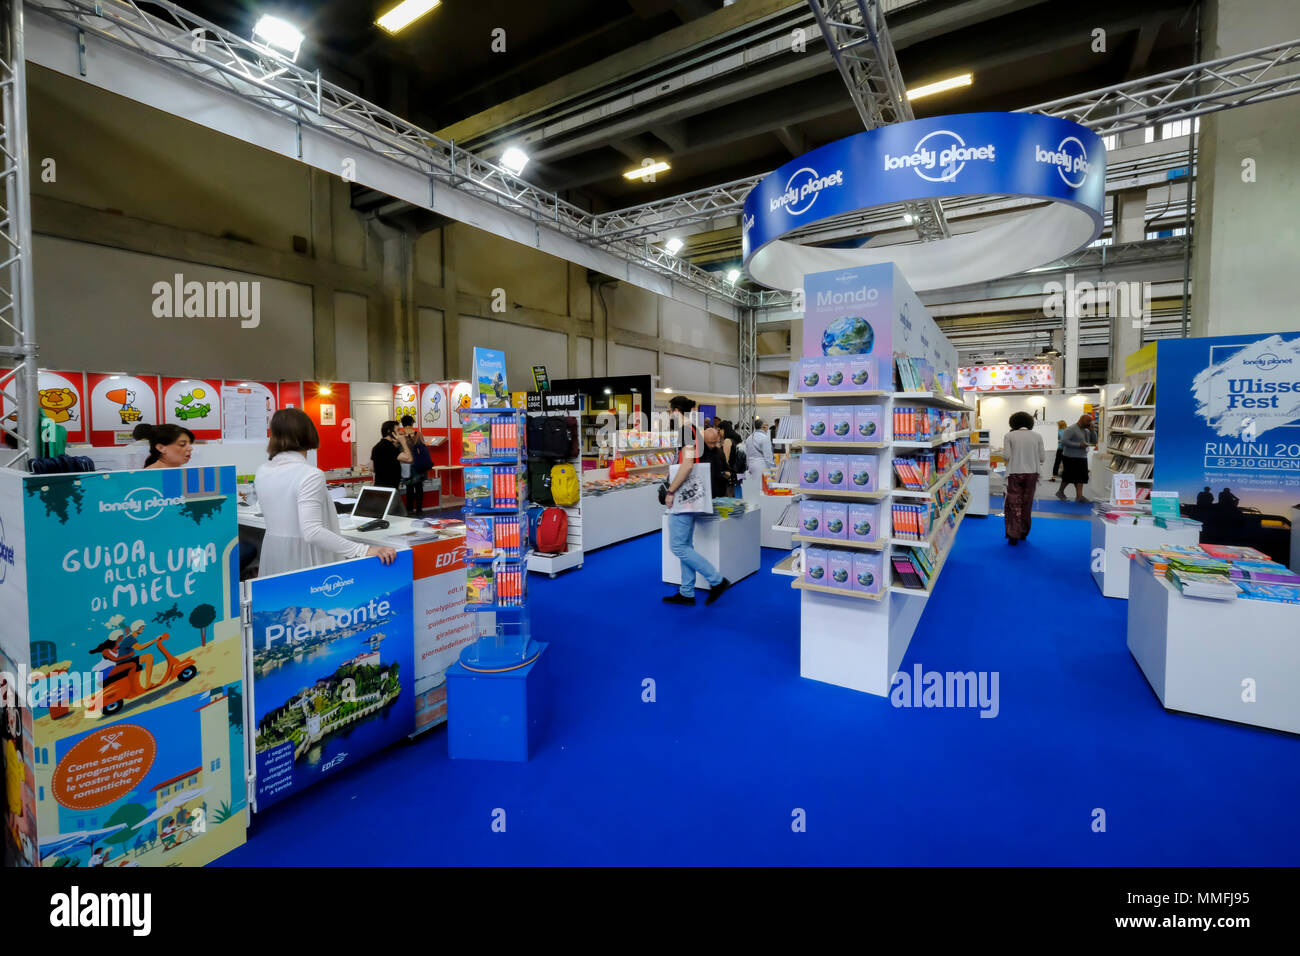 Turin, Piedmont, Italy, 10th May, 2018. International Book fair 2018,first day.Lonely Planet publisher's stand Credit: RENATO VALTERZA/Alamy Live News - Stock Image